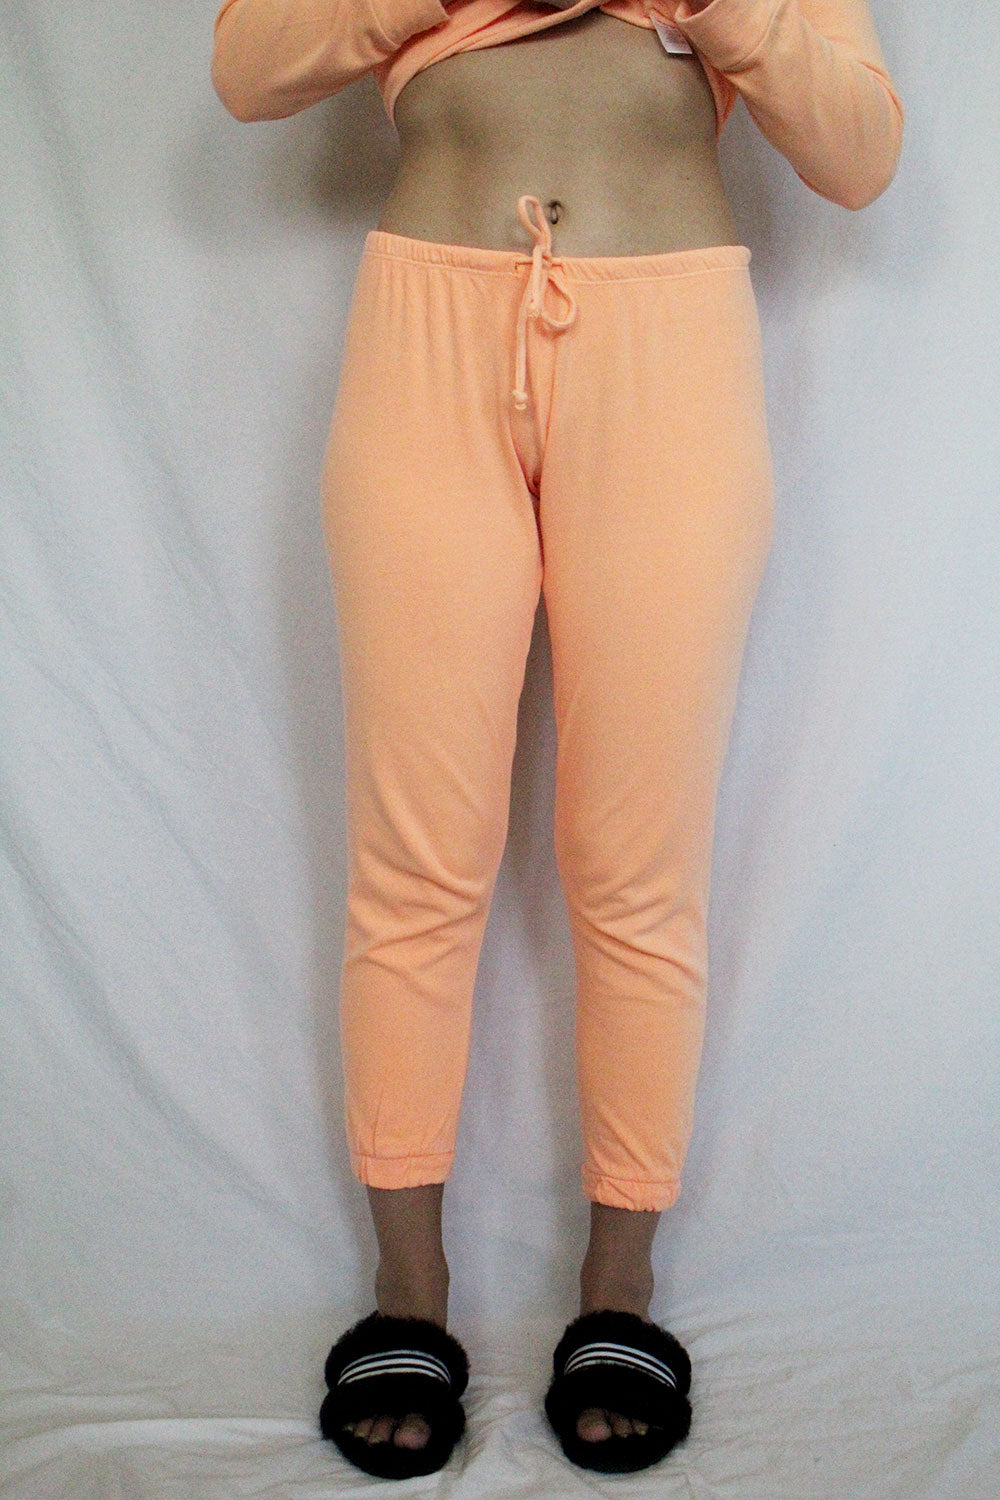 Cotton Fleece Relaxed Lounge Pant in Neon Orange